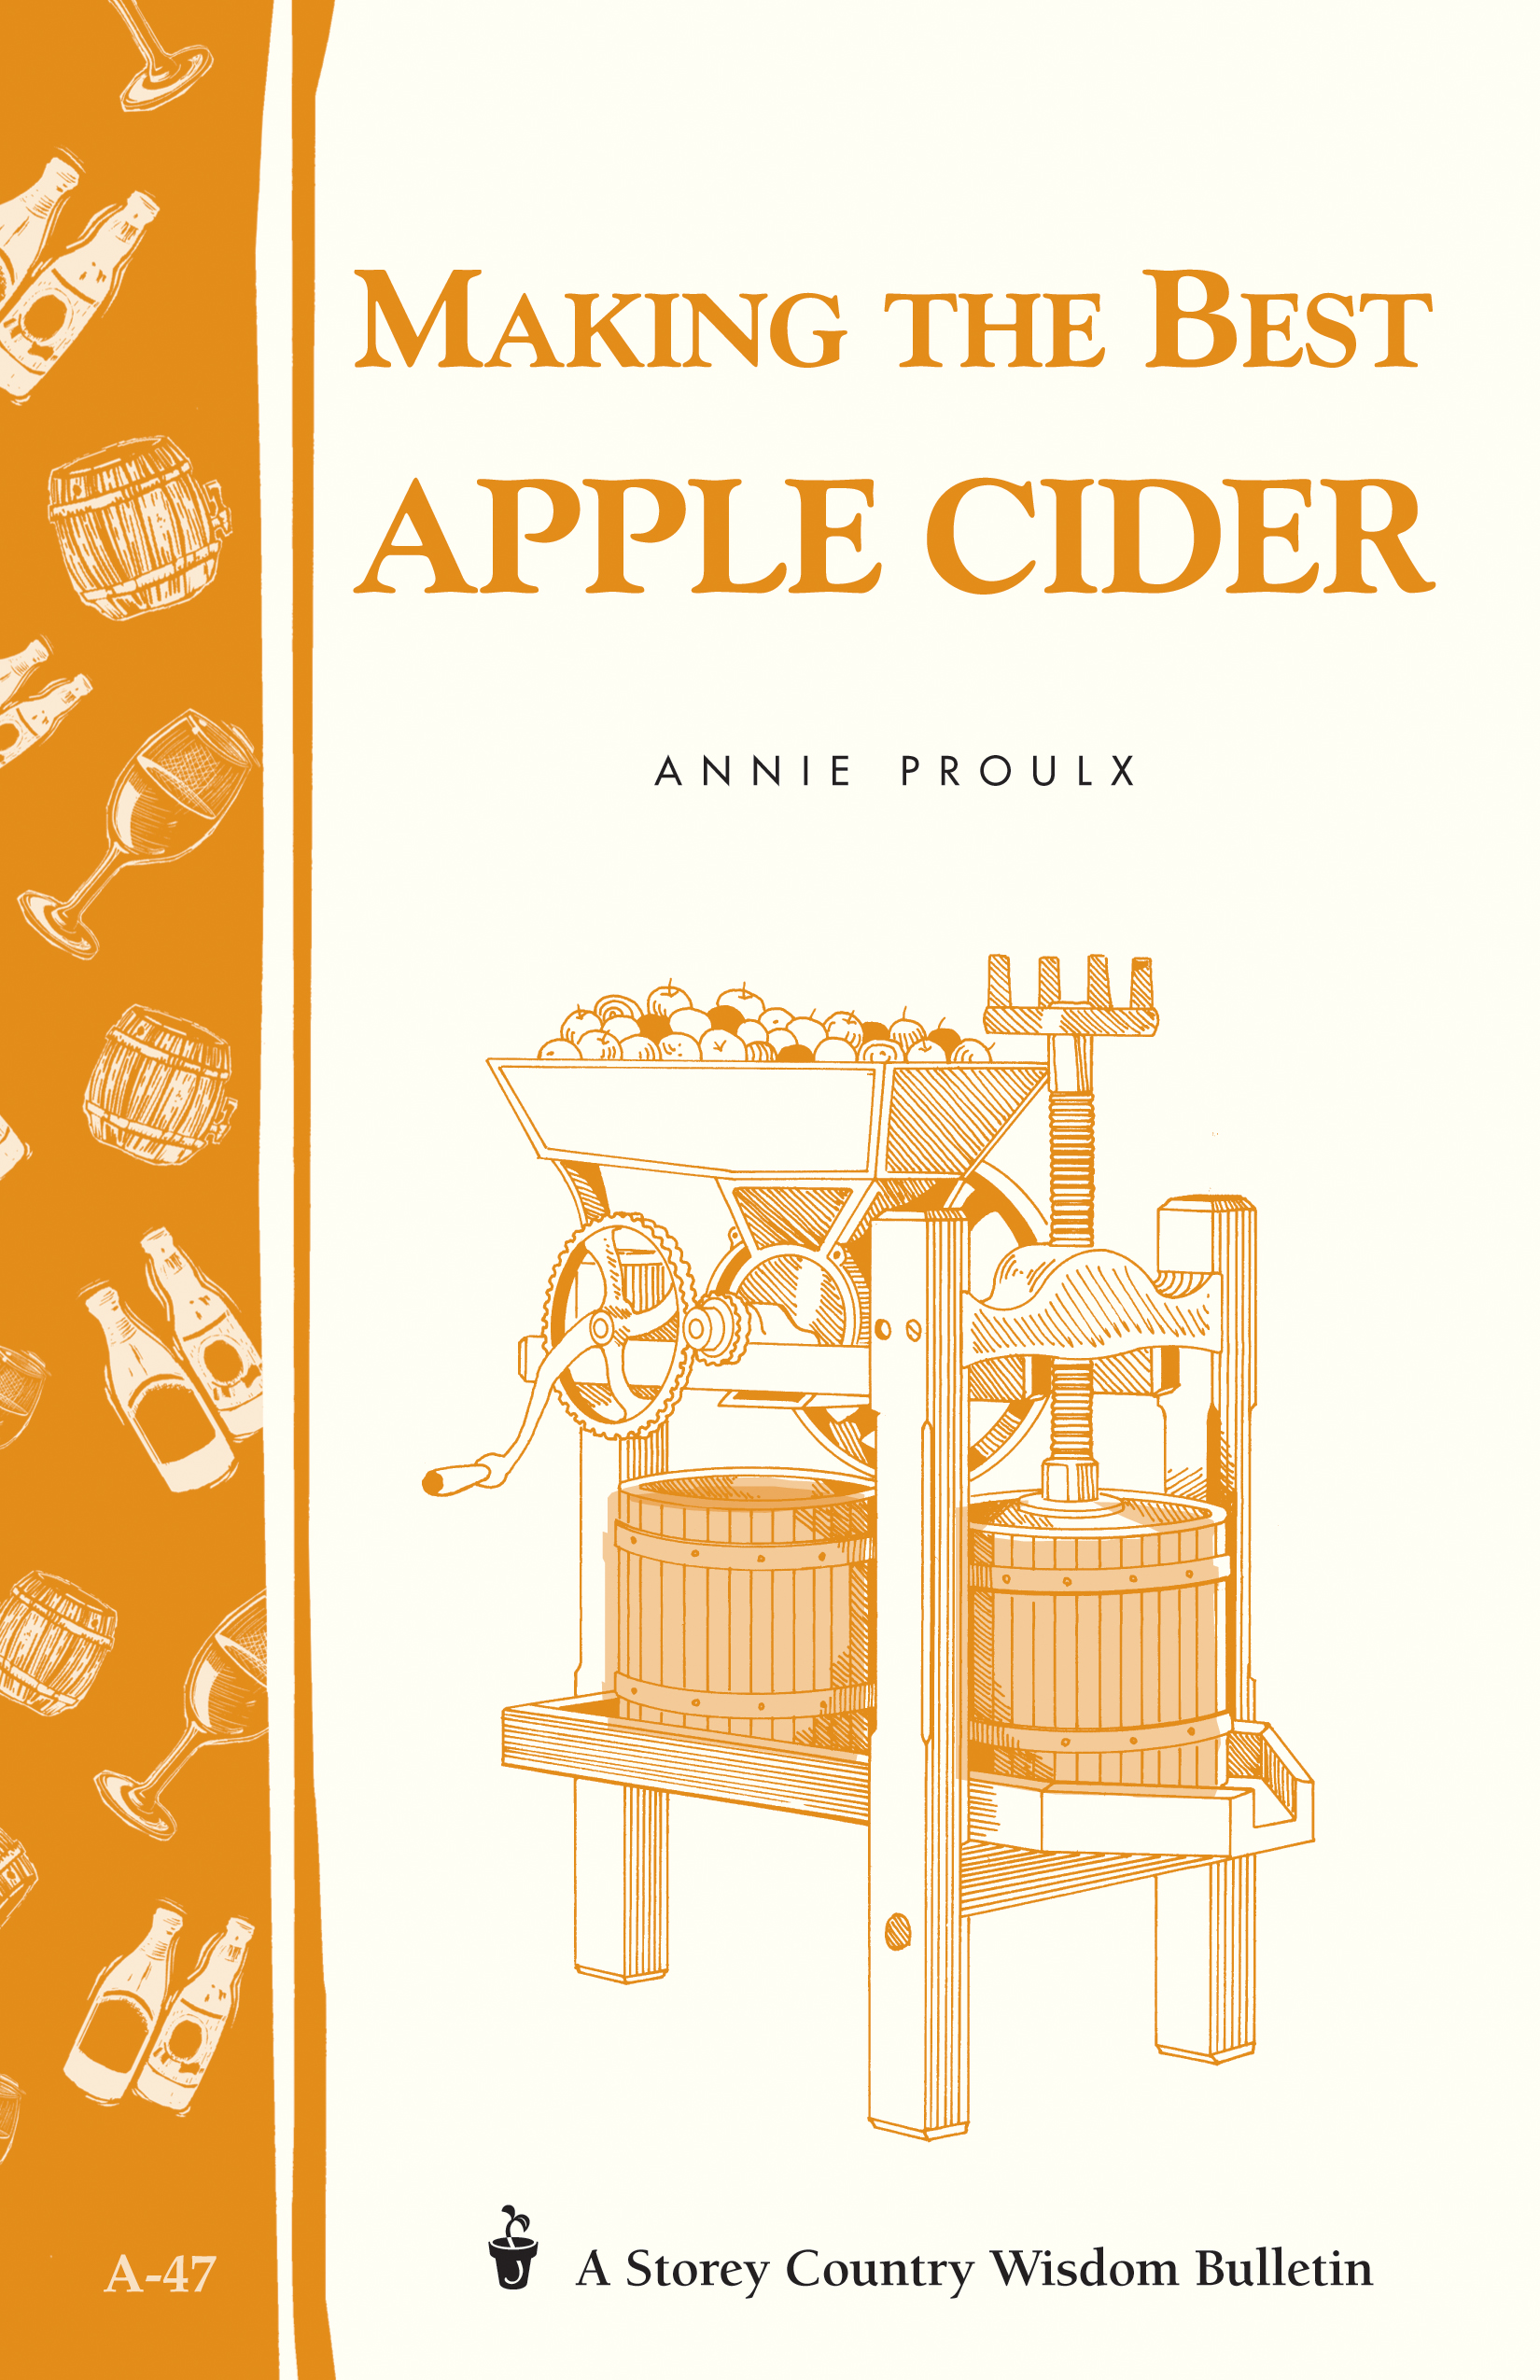 Making the Best Apple Cider Storey Country Wisdom Bulletin A-47 - Annie Proulx